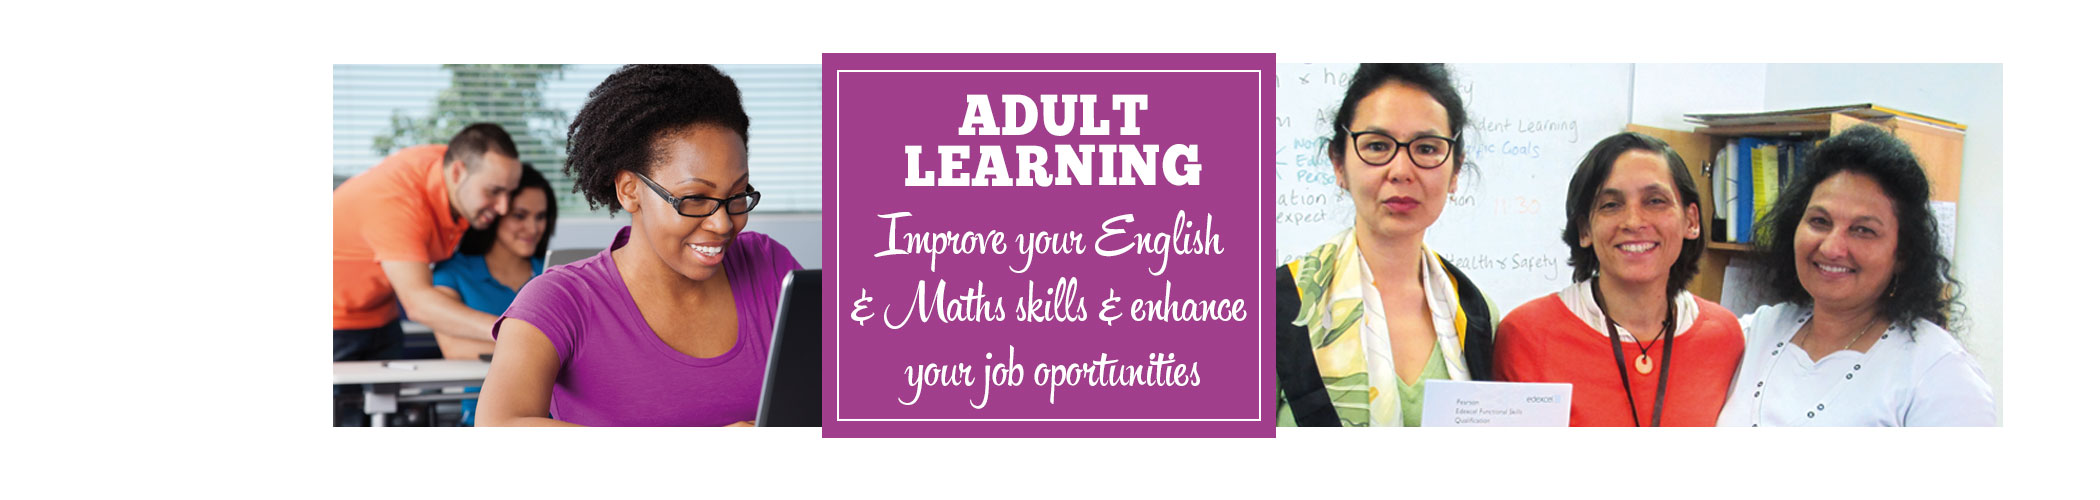 Adult Learning page iphone banner